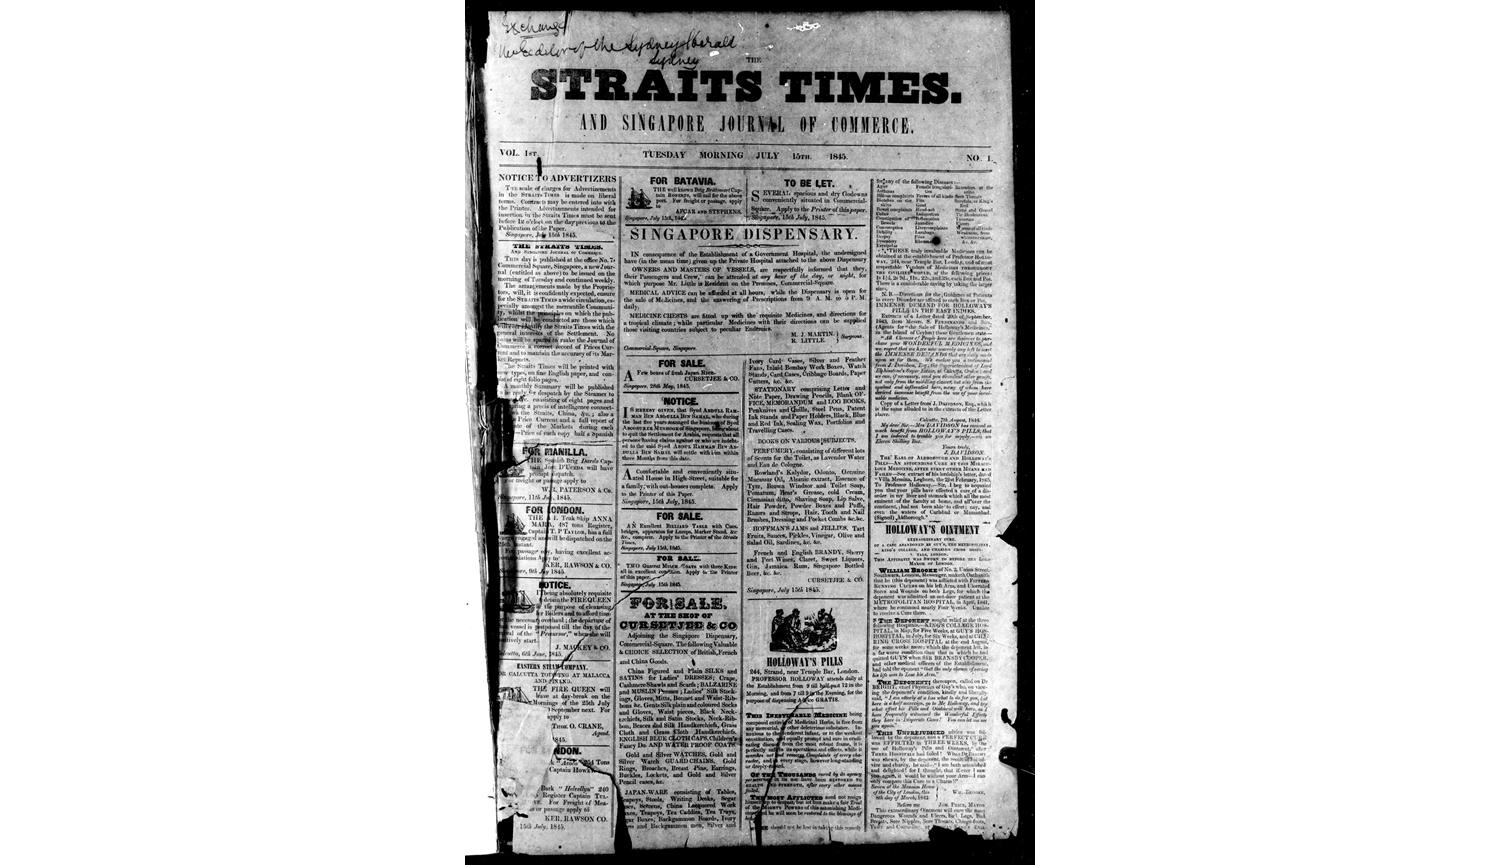 The Straits Times Historical newpaper